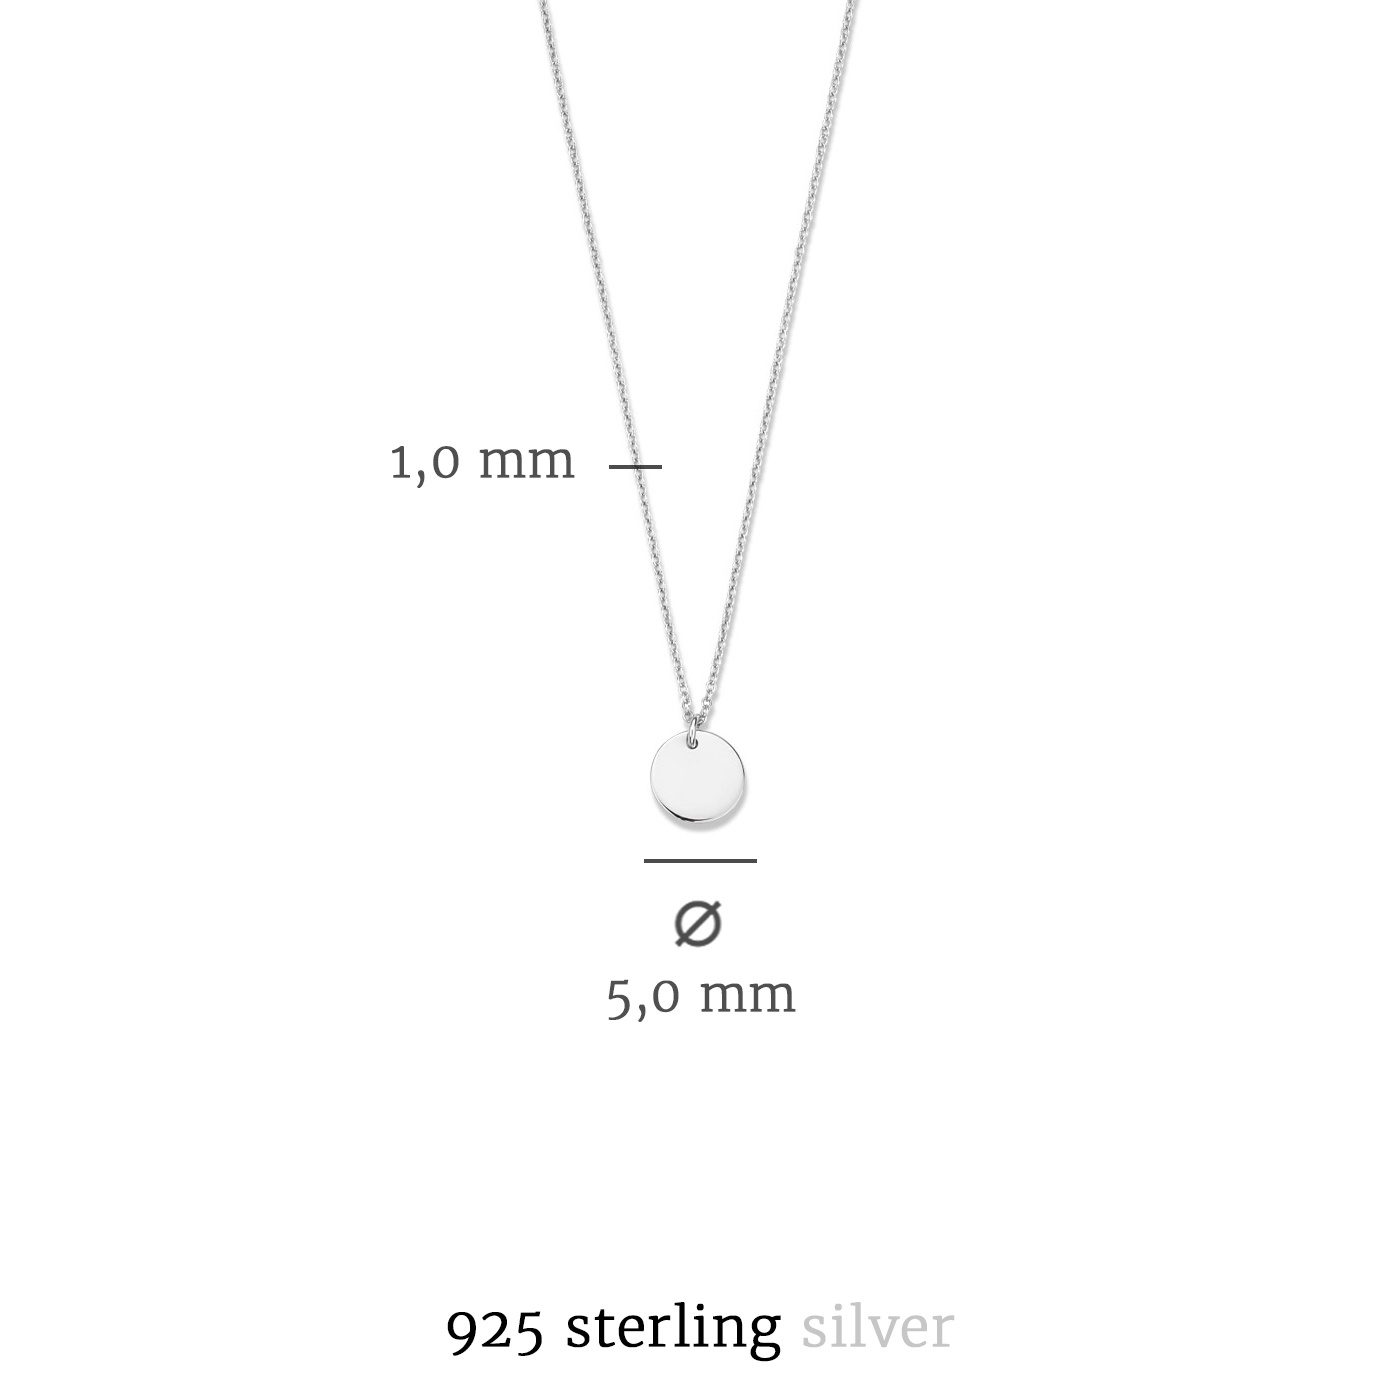 Selected Jewels Julie Belle 925 sterling silver necklace with coin